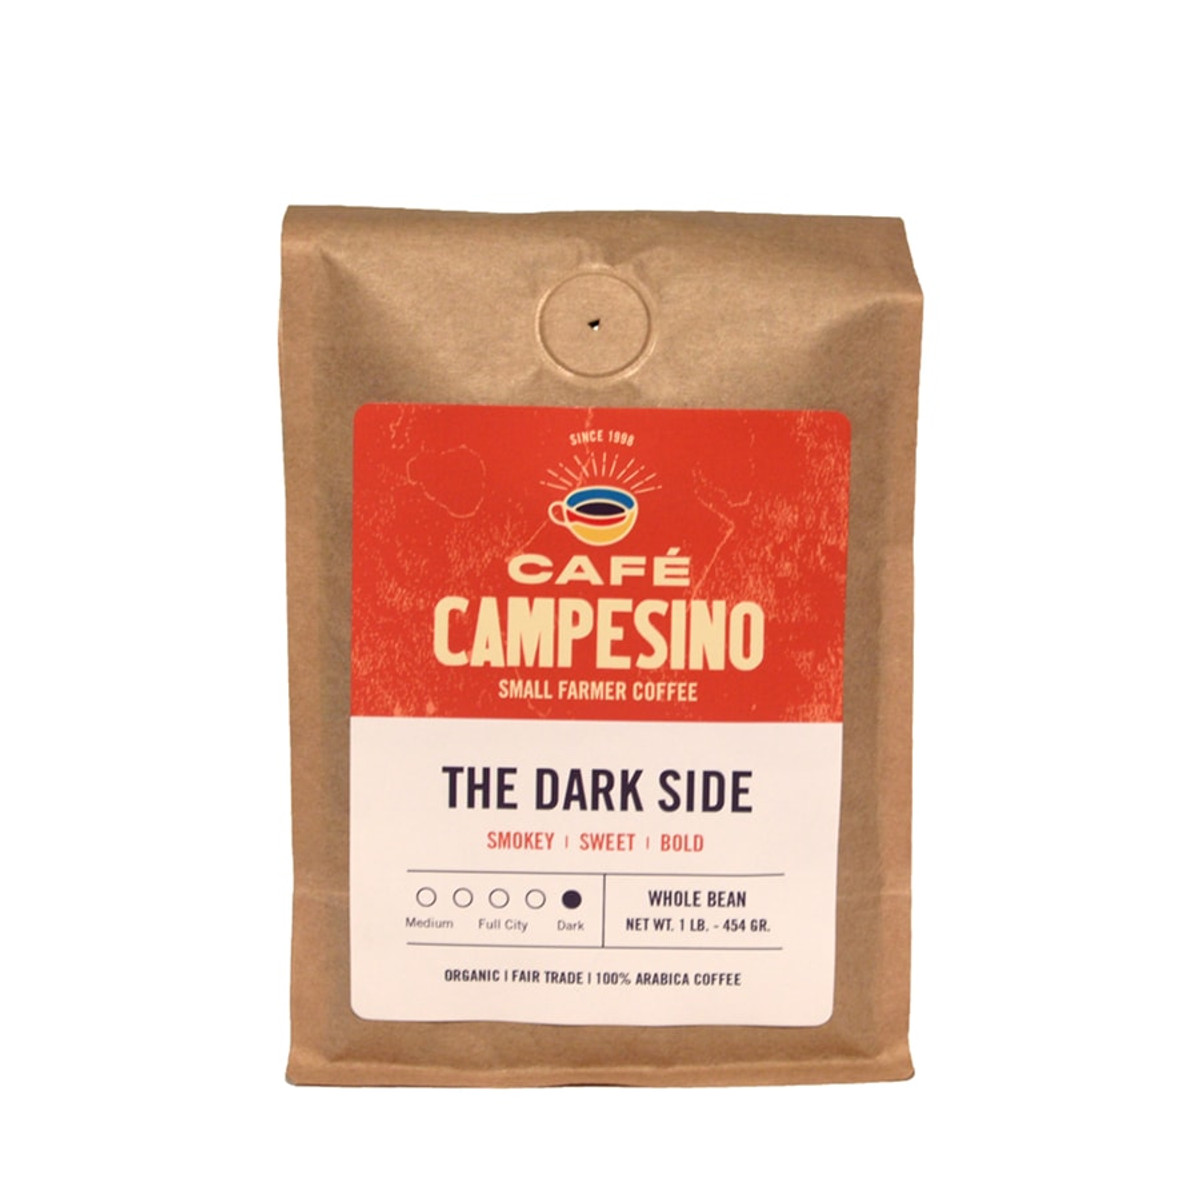 The Dark Side is a fair trade, organic, shade-grown blend of Latin American coffees with a full body, a smooth finish, with chocolate notes and a mildly smoky aftertaste.